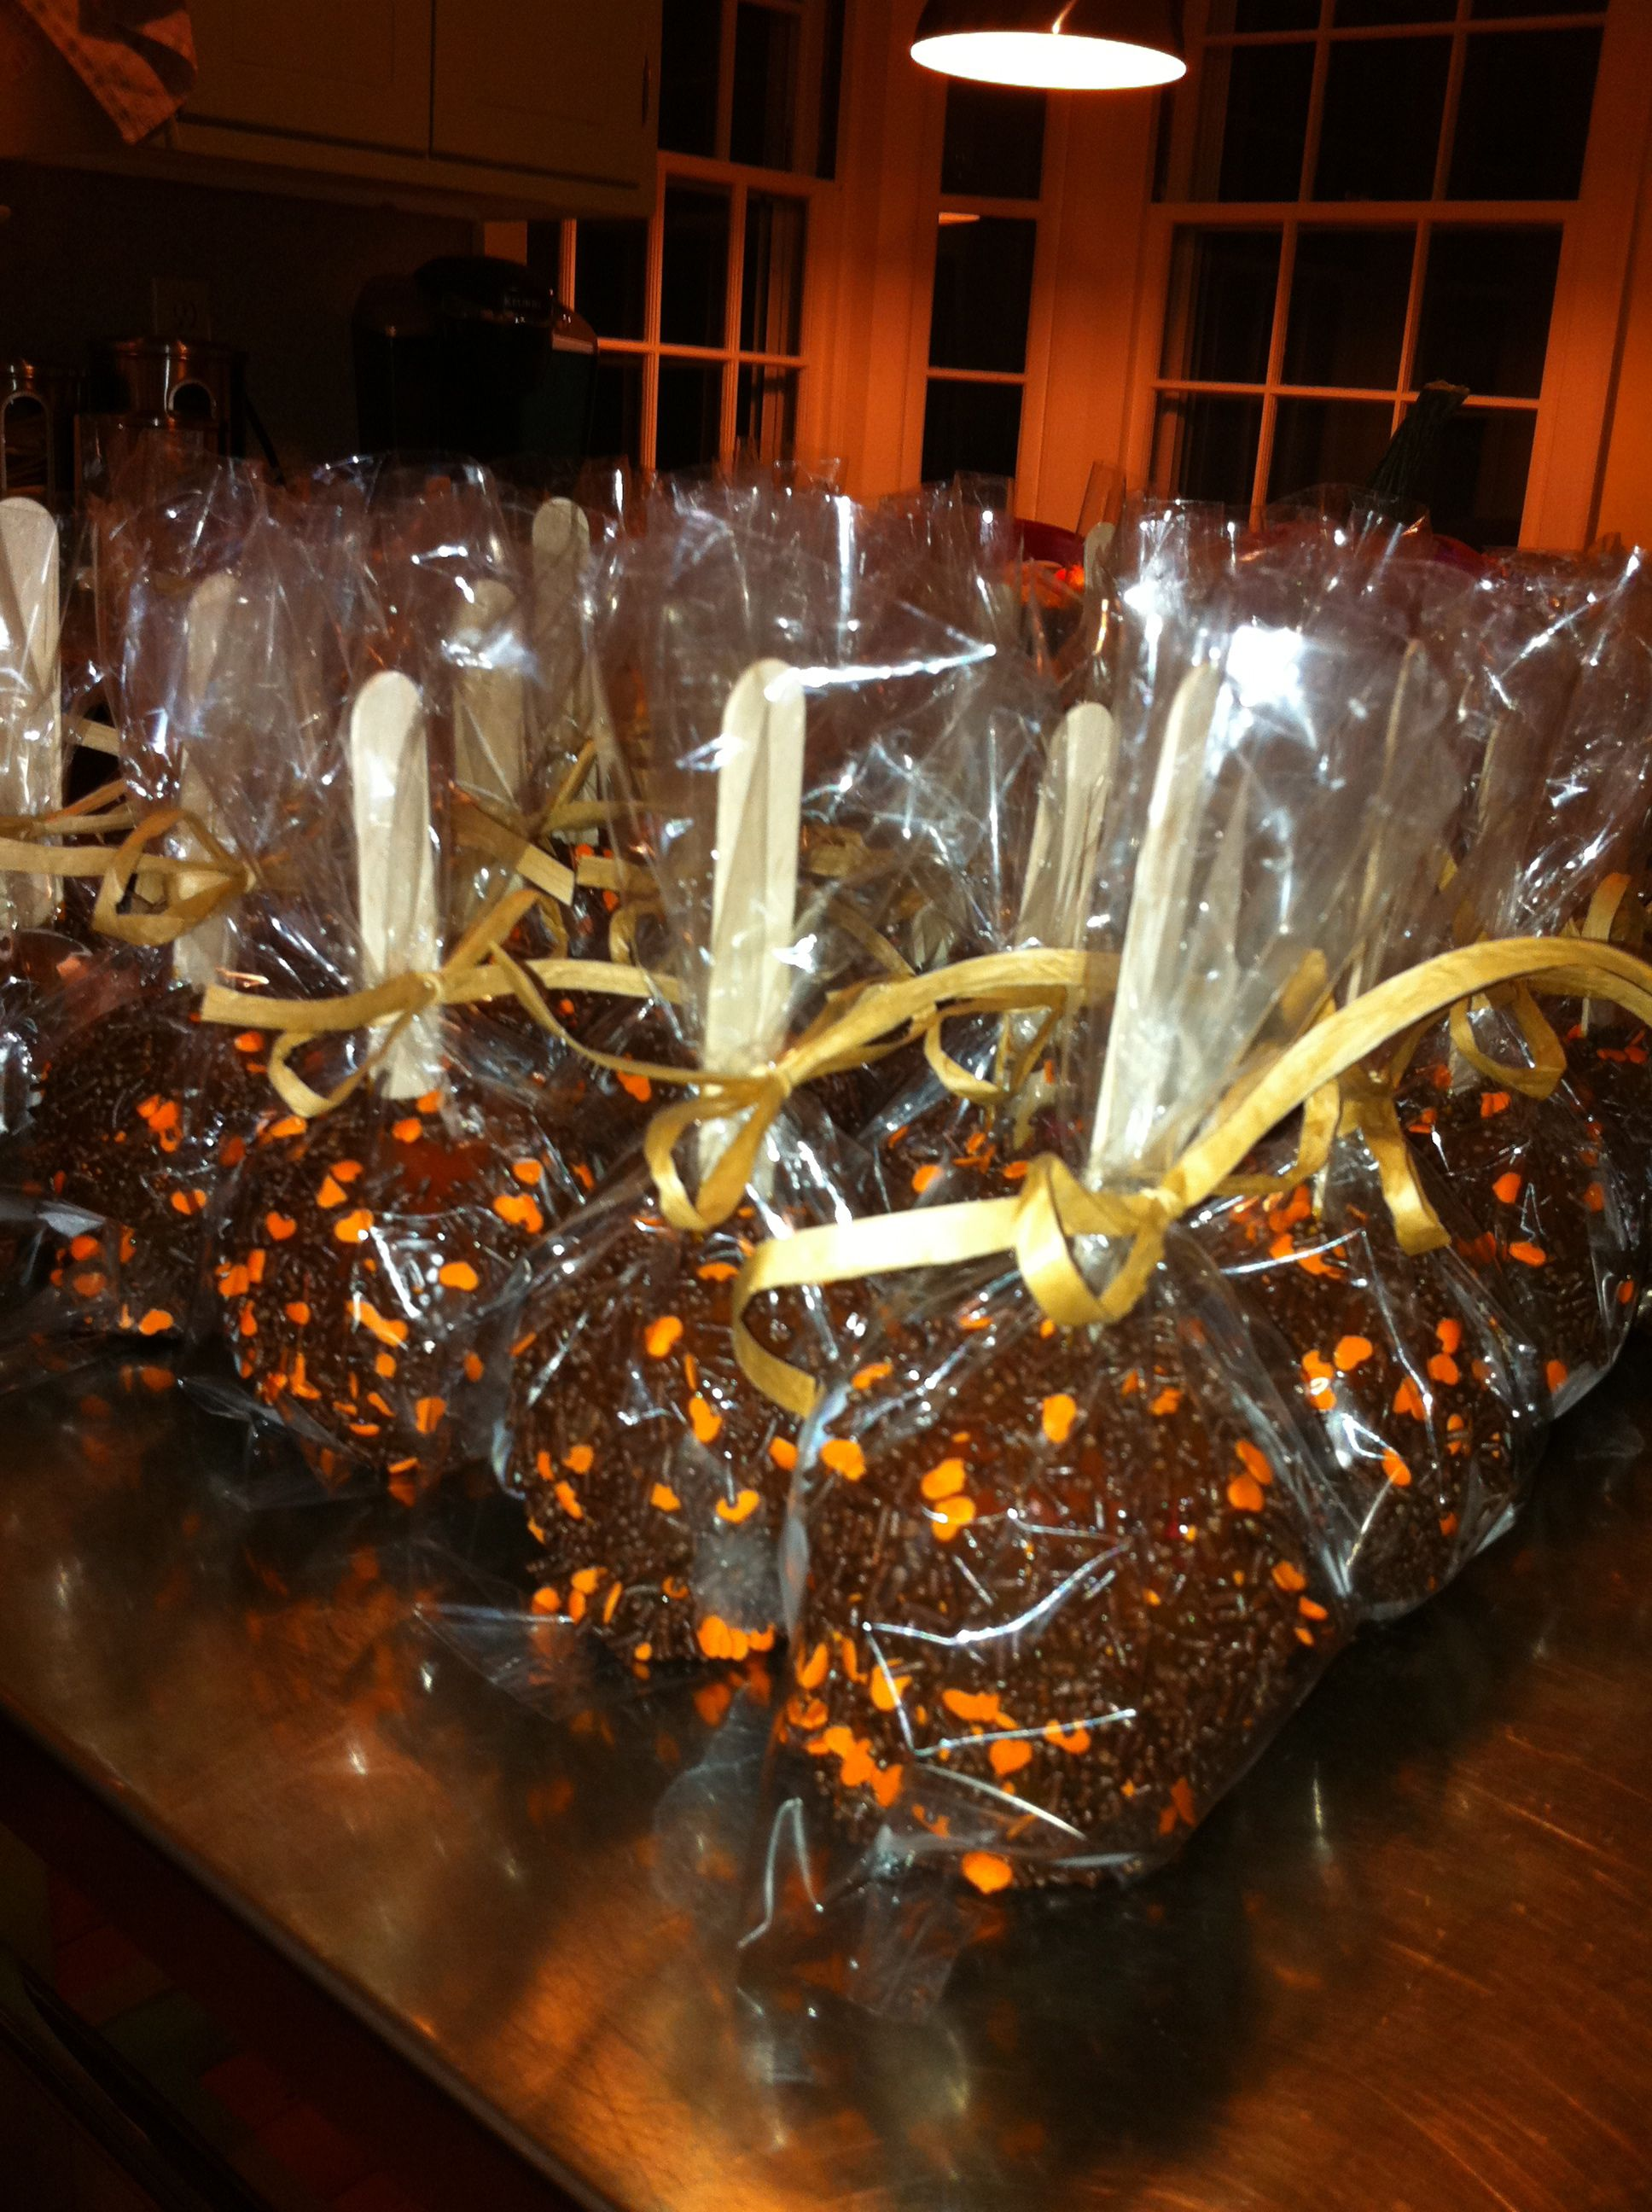 Hand dipped caramel apples covered in chocolate sprinkles